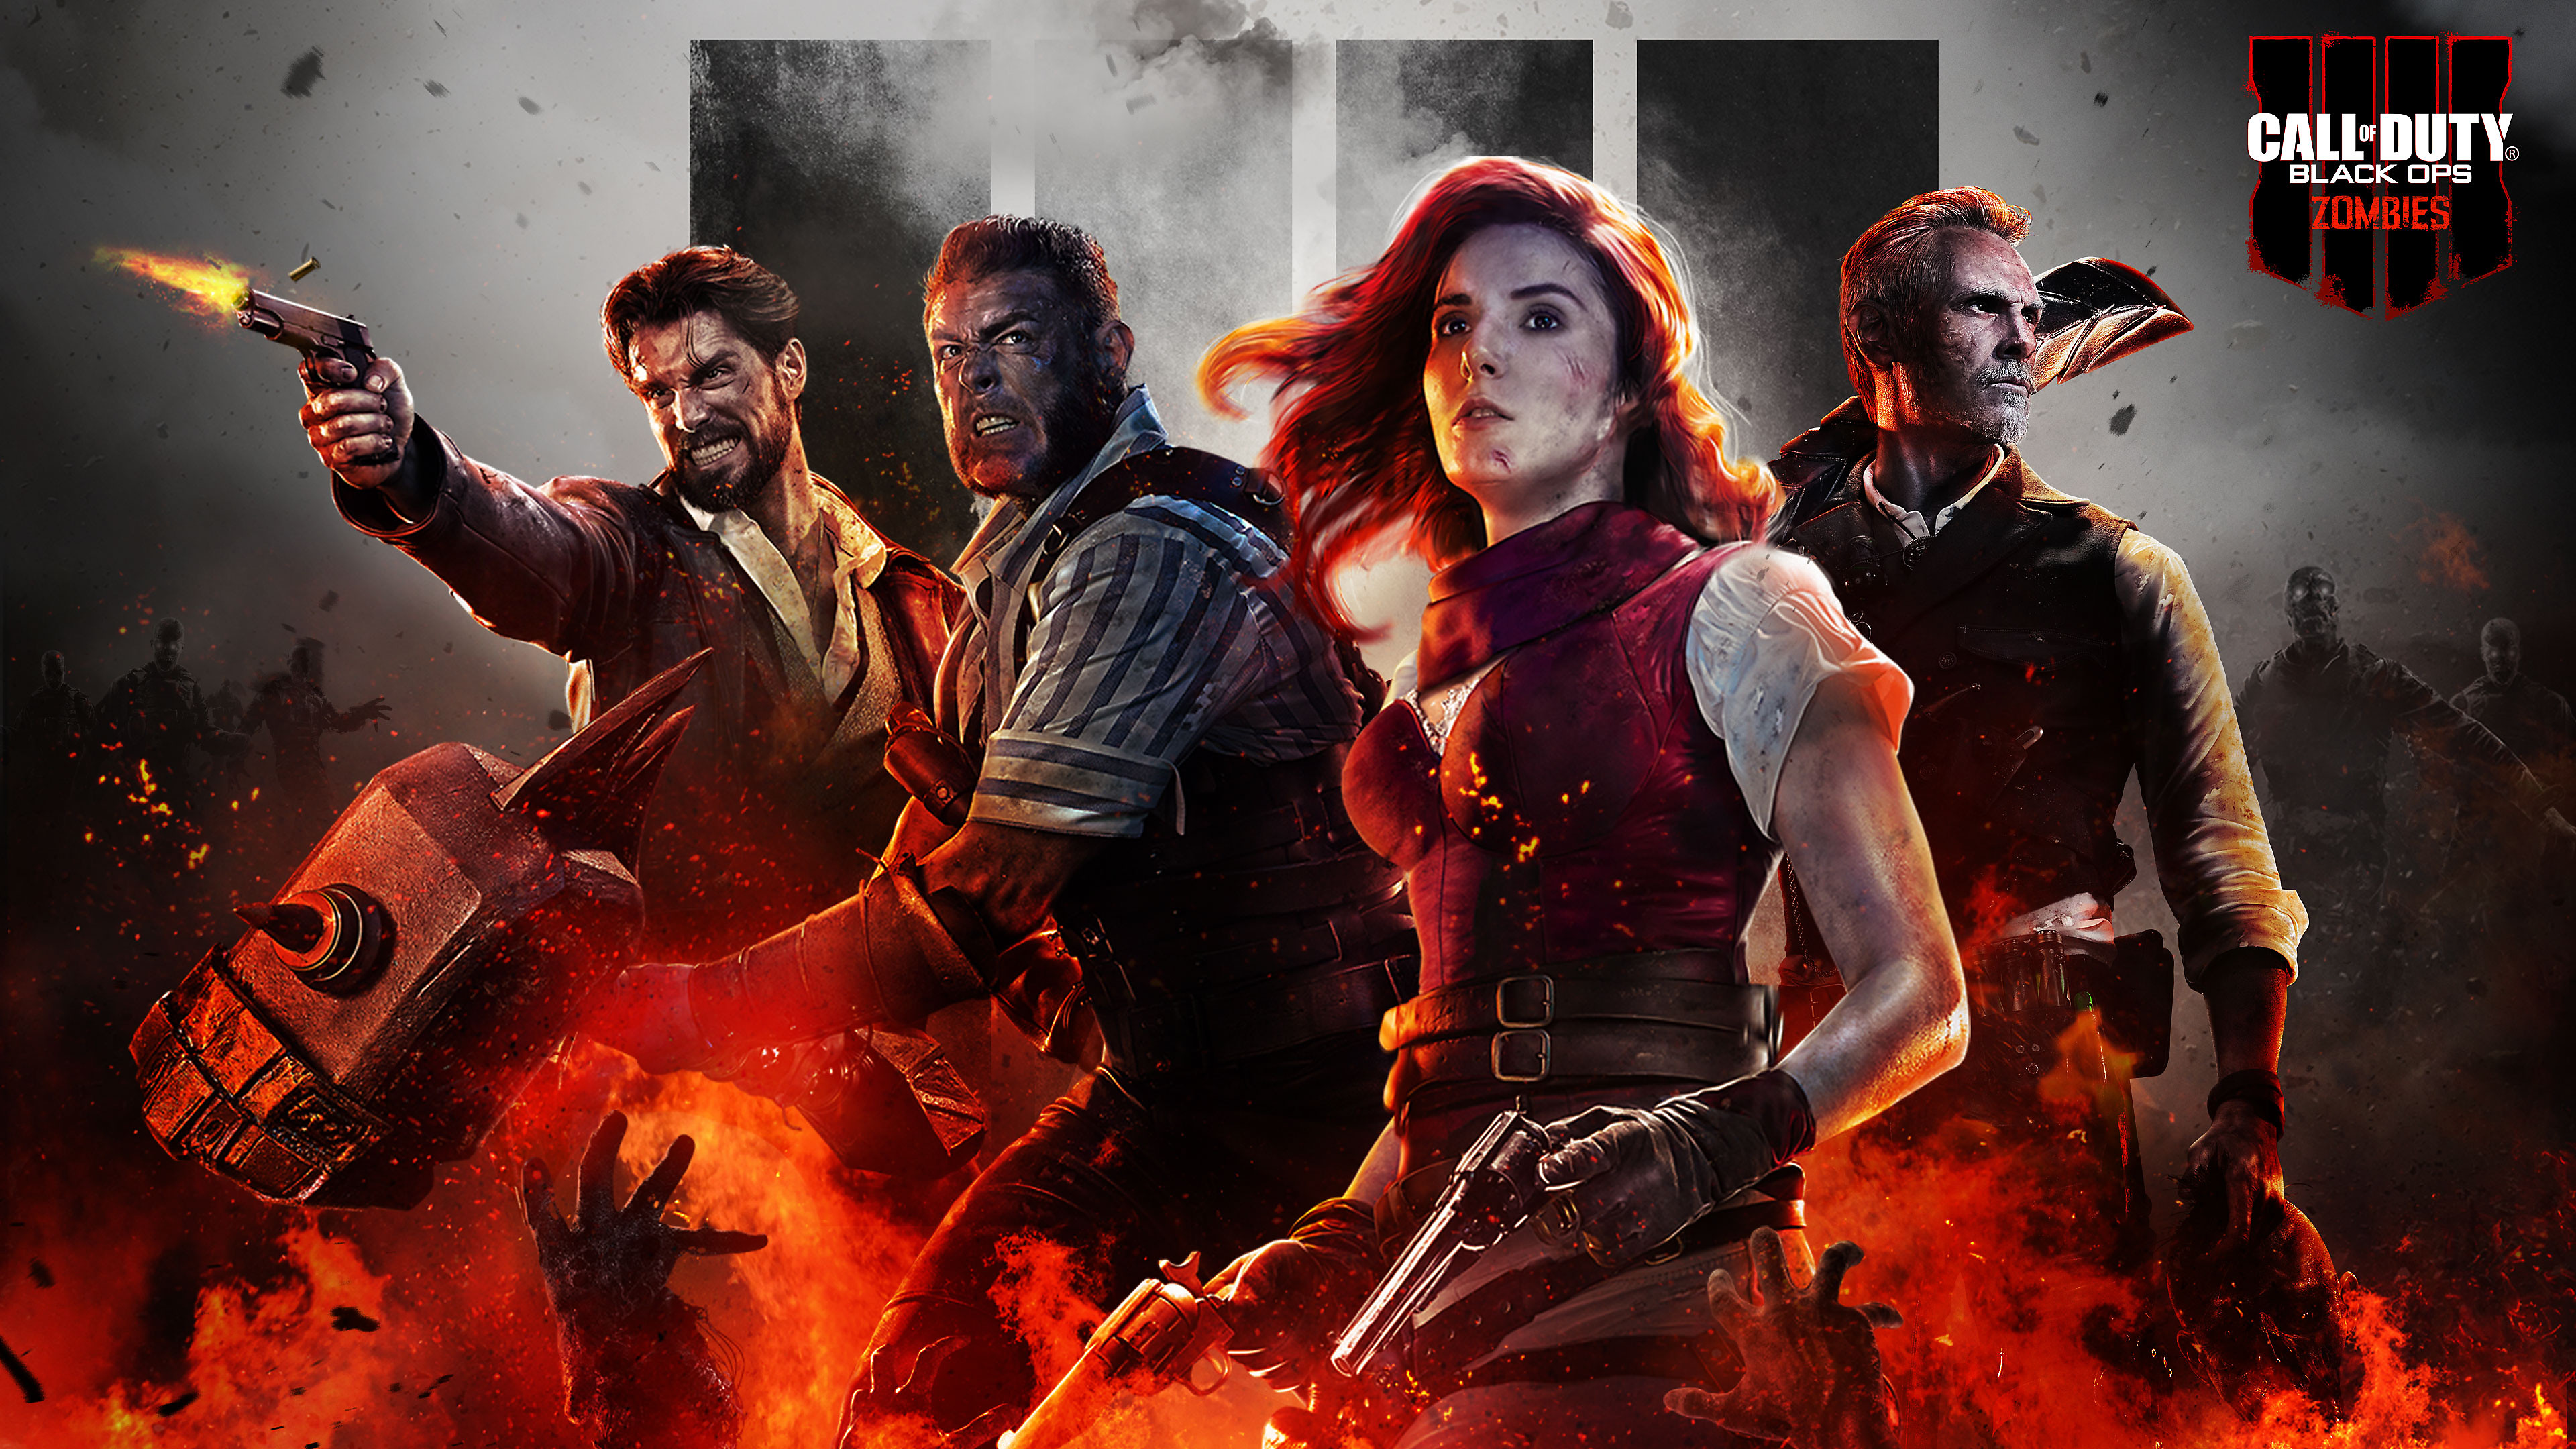 33 Call Of Duty Black Ops 4 Zombies Wallpapers On Wallpapersafari